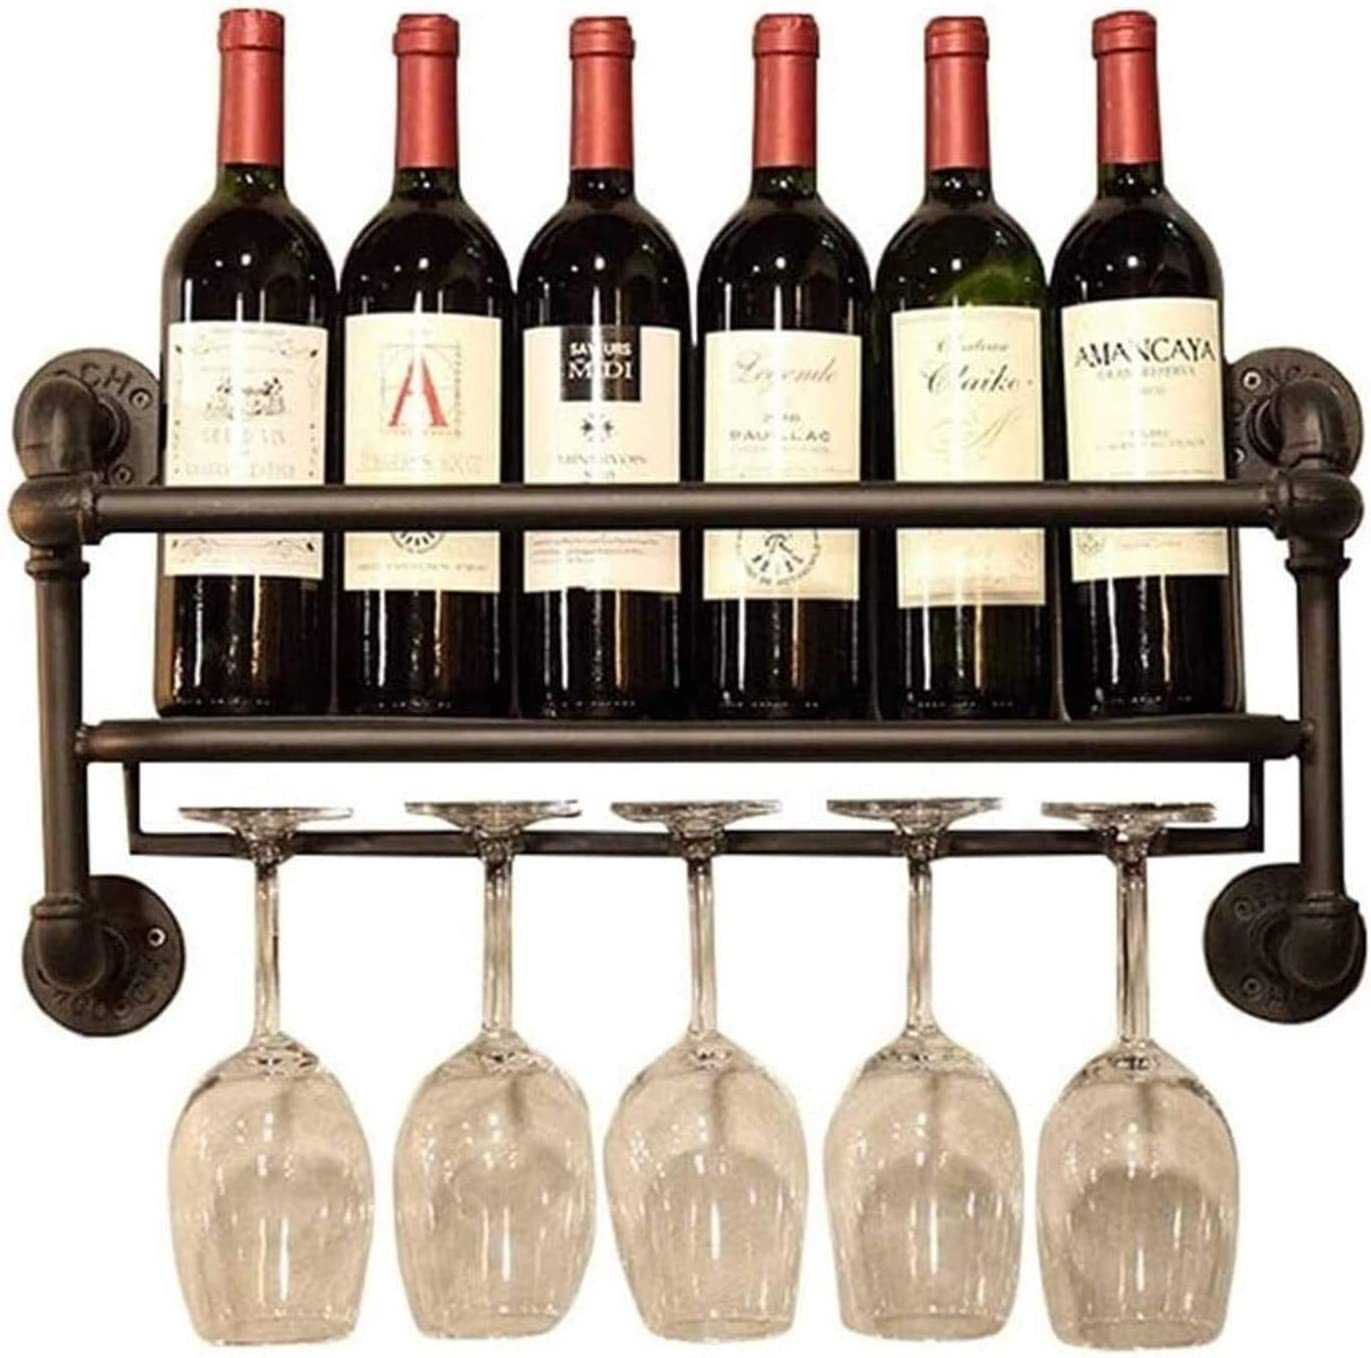 LXYYY Wine Rack Ceiling National uniform free shipping 2021 spring and summer new Industri Bottle Hanging Holder